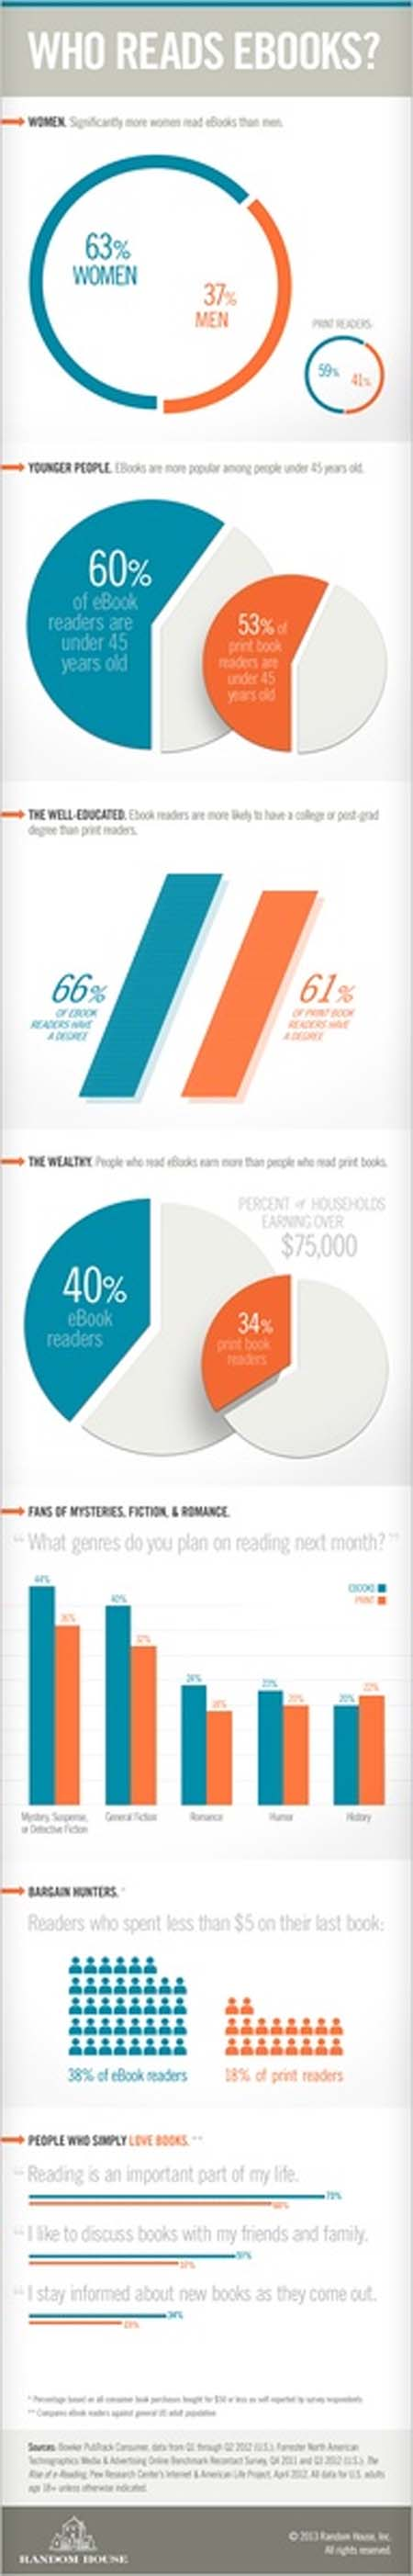 Ebook Readers Infographic